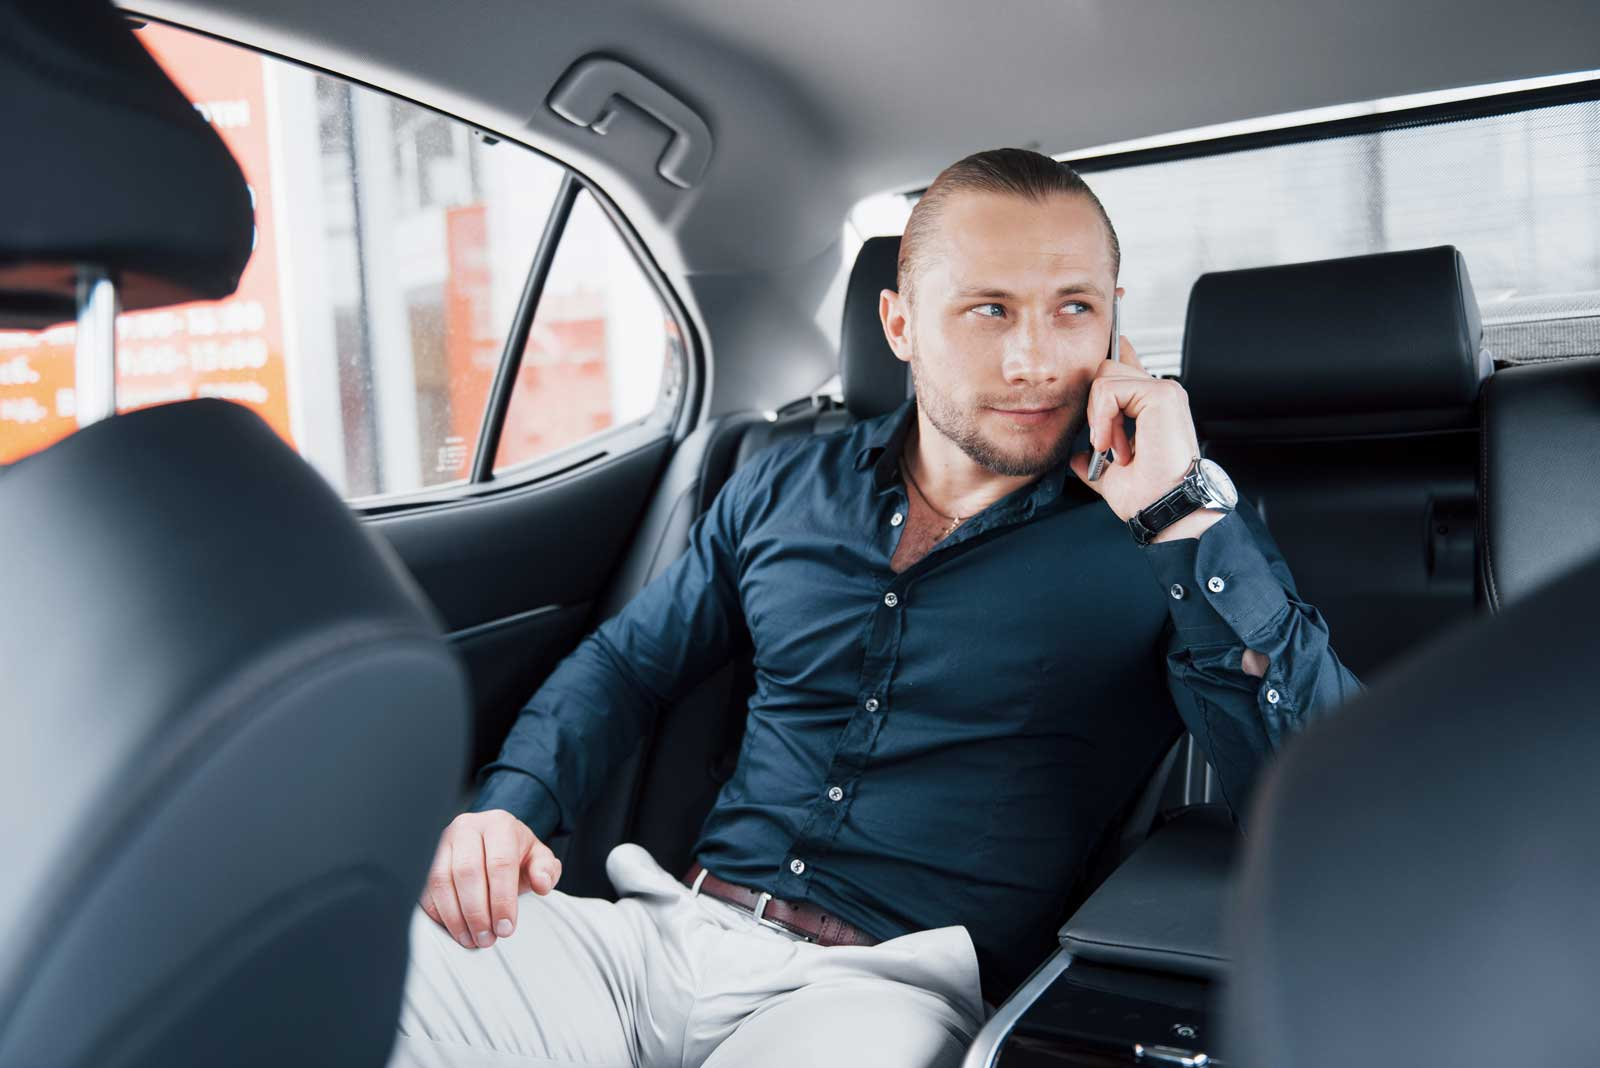 chauffeur car business man on phone in back of car